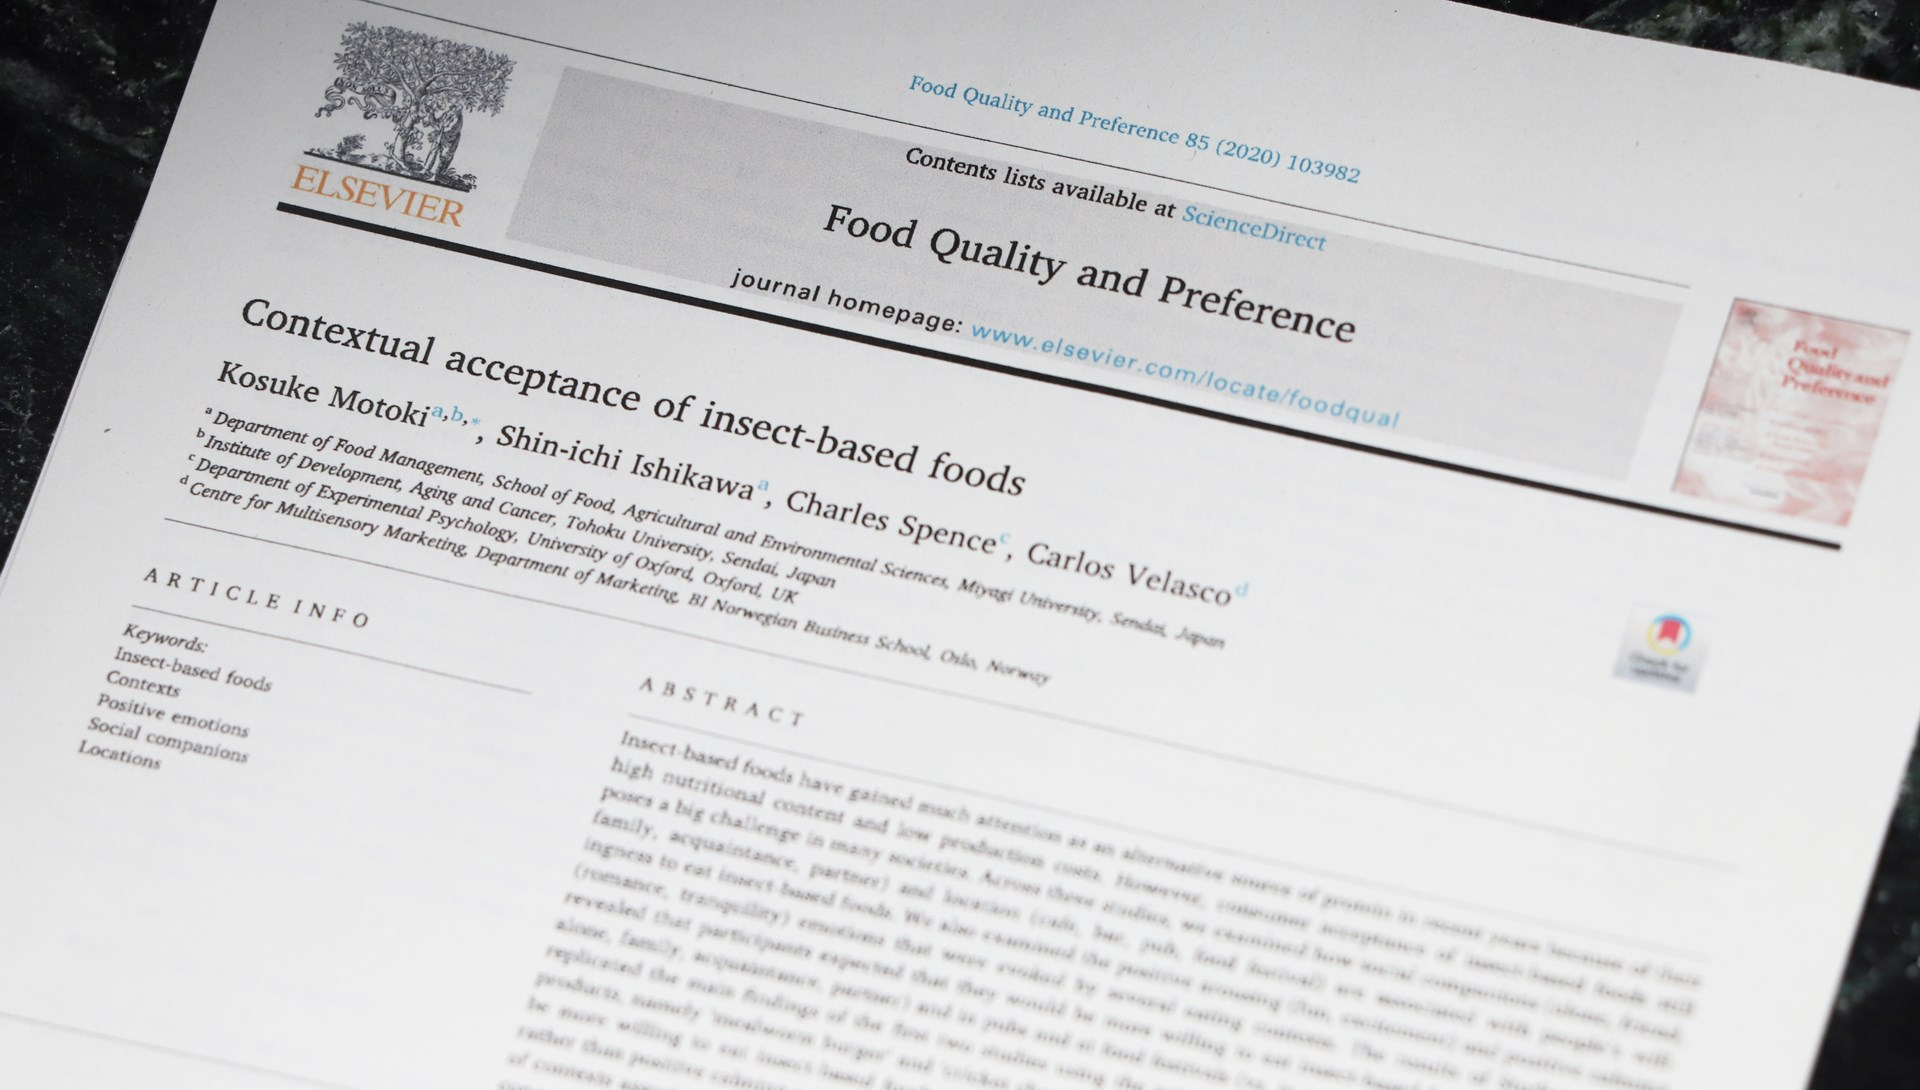 Contextual acceptance of insect-based foods